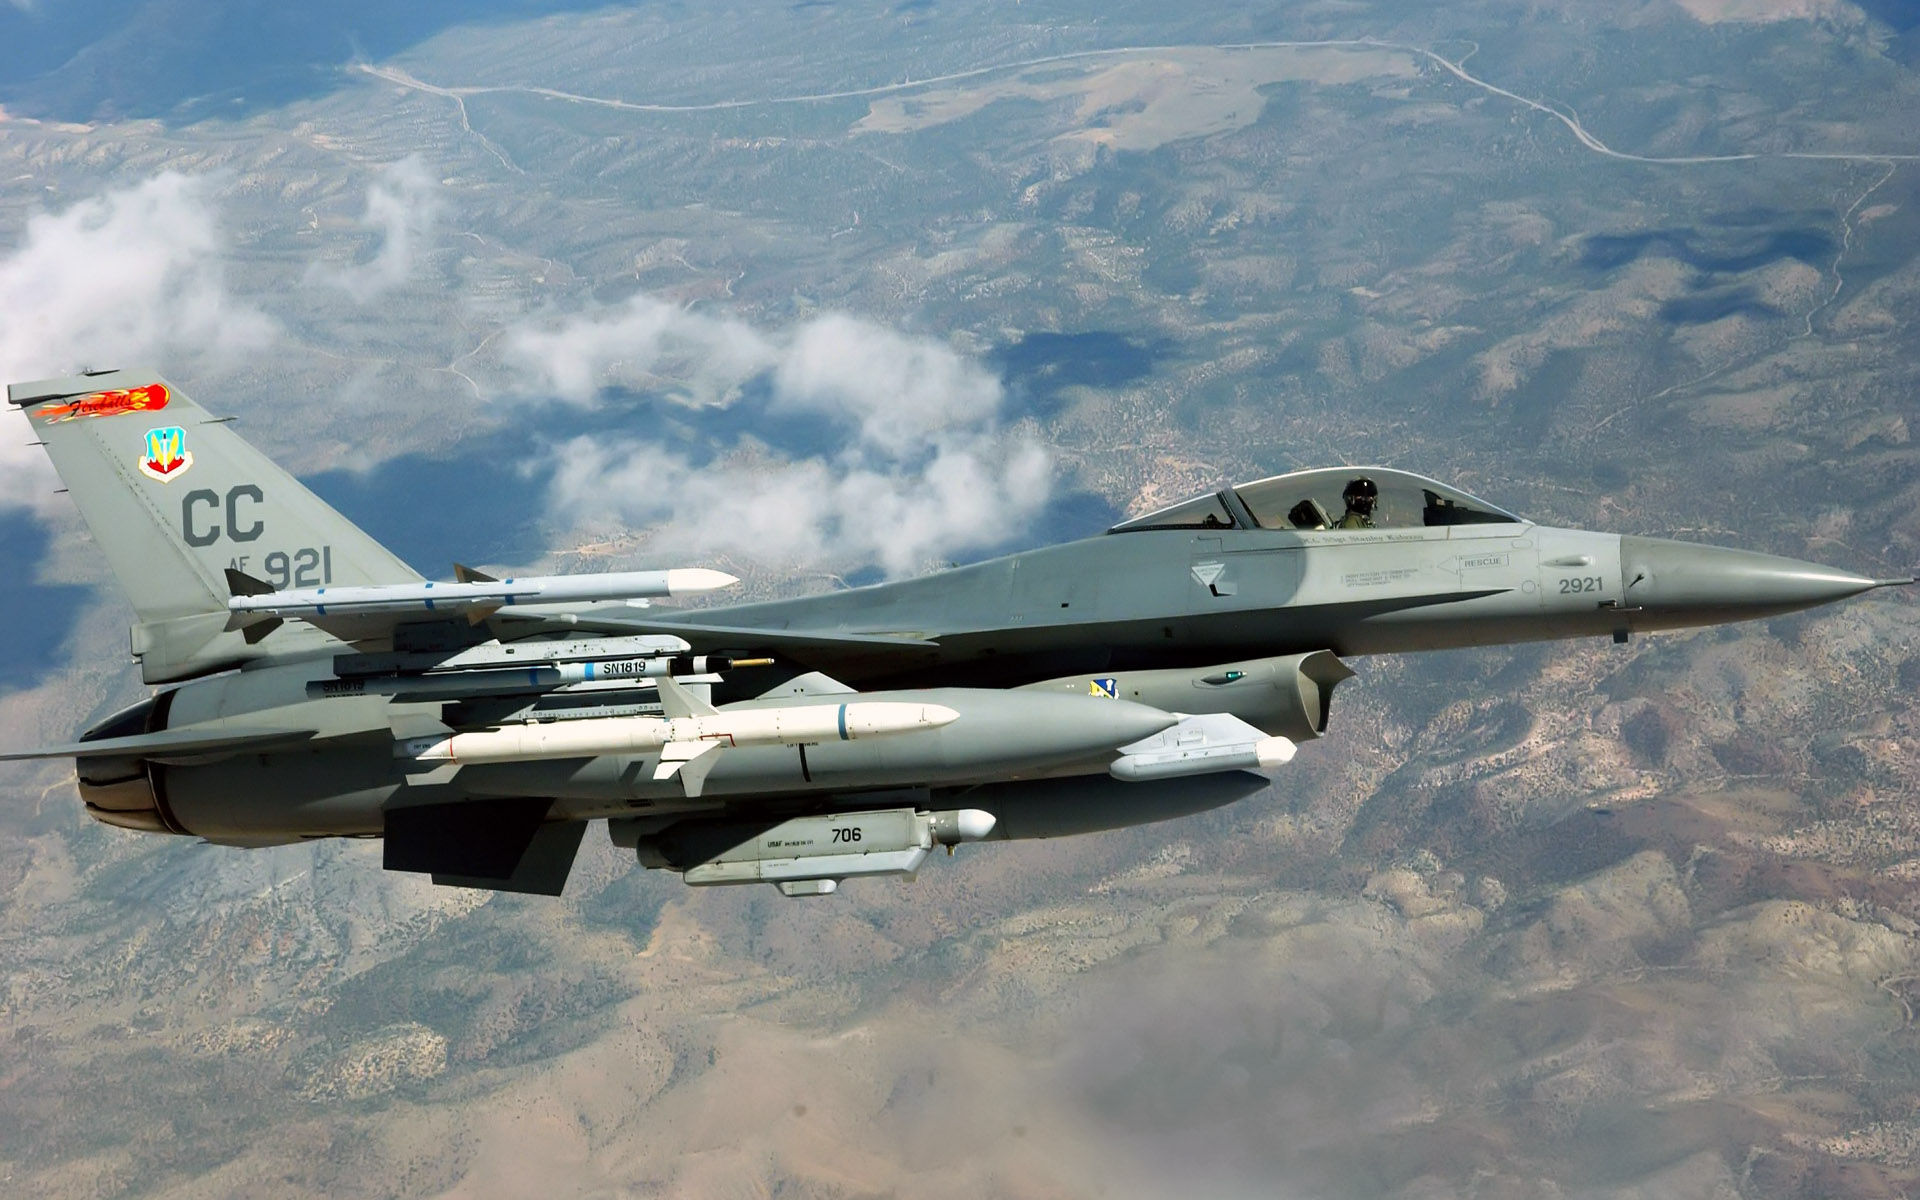 Aircraft HD Wallpapers f 16c fighting falcon cannon air force 1920x1200